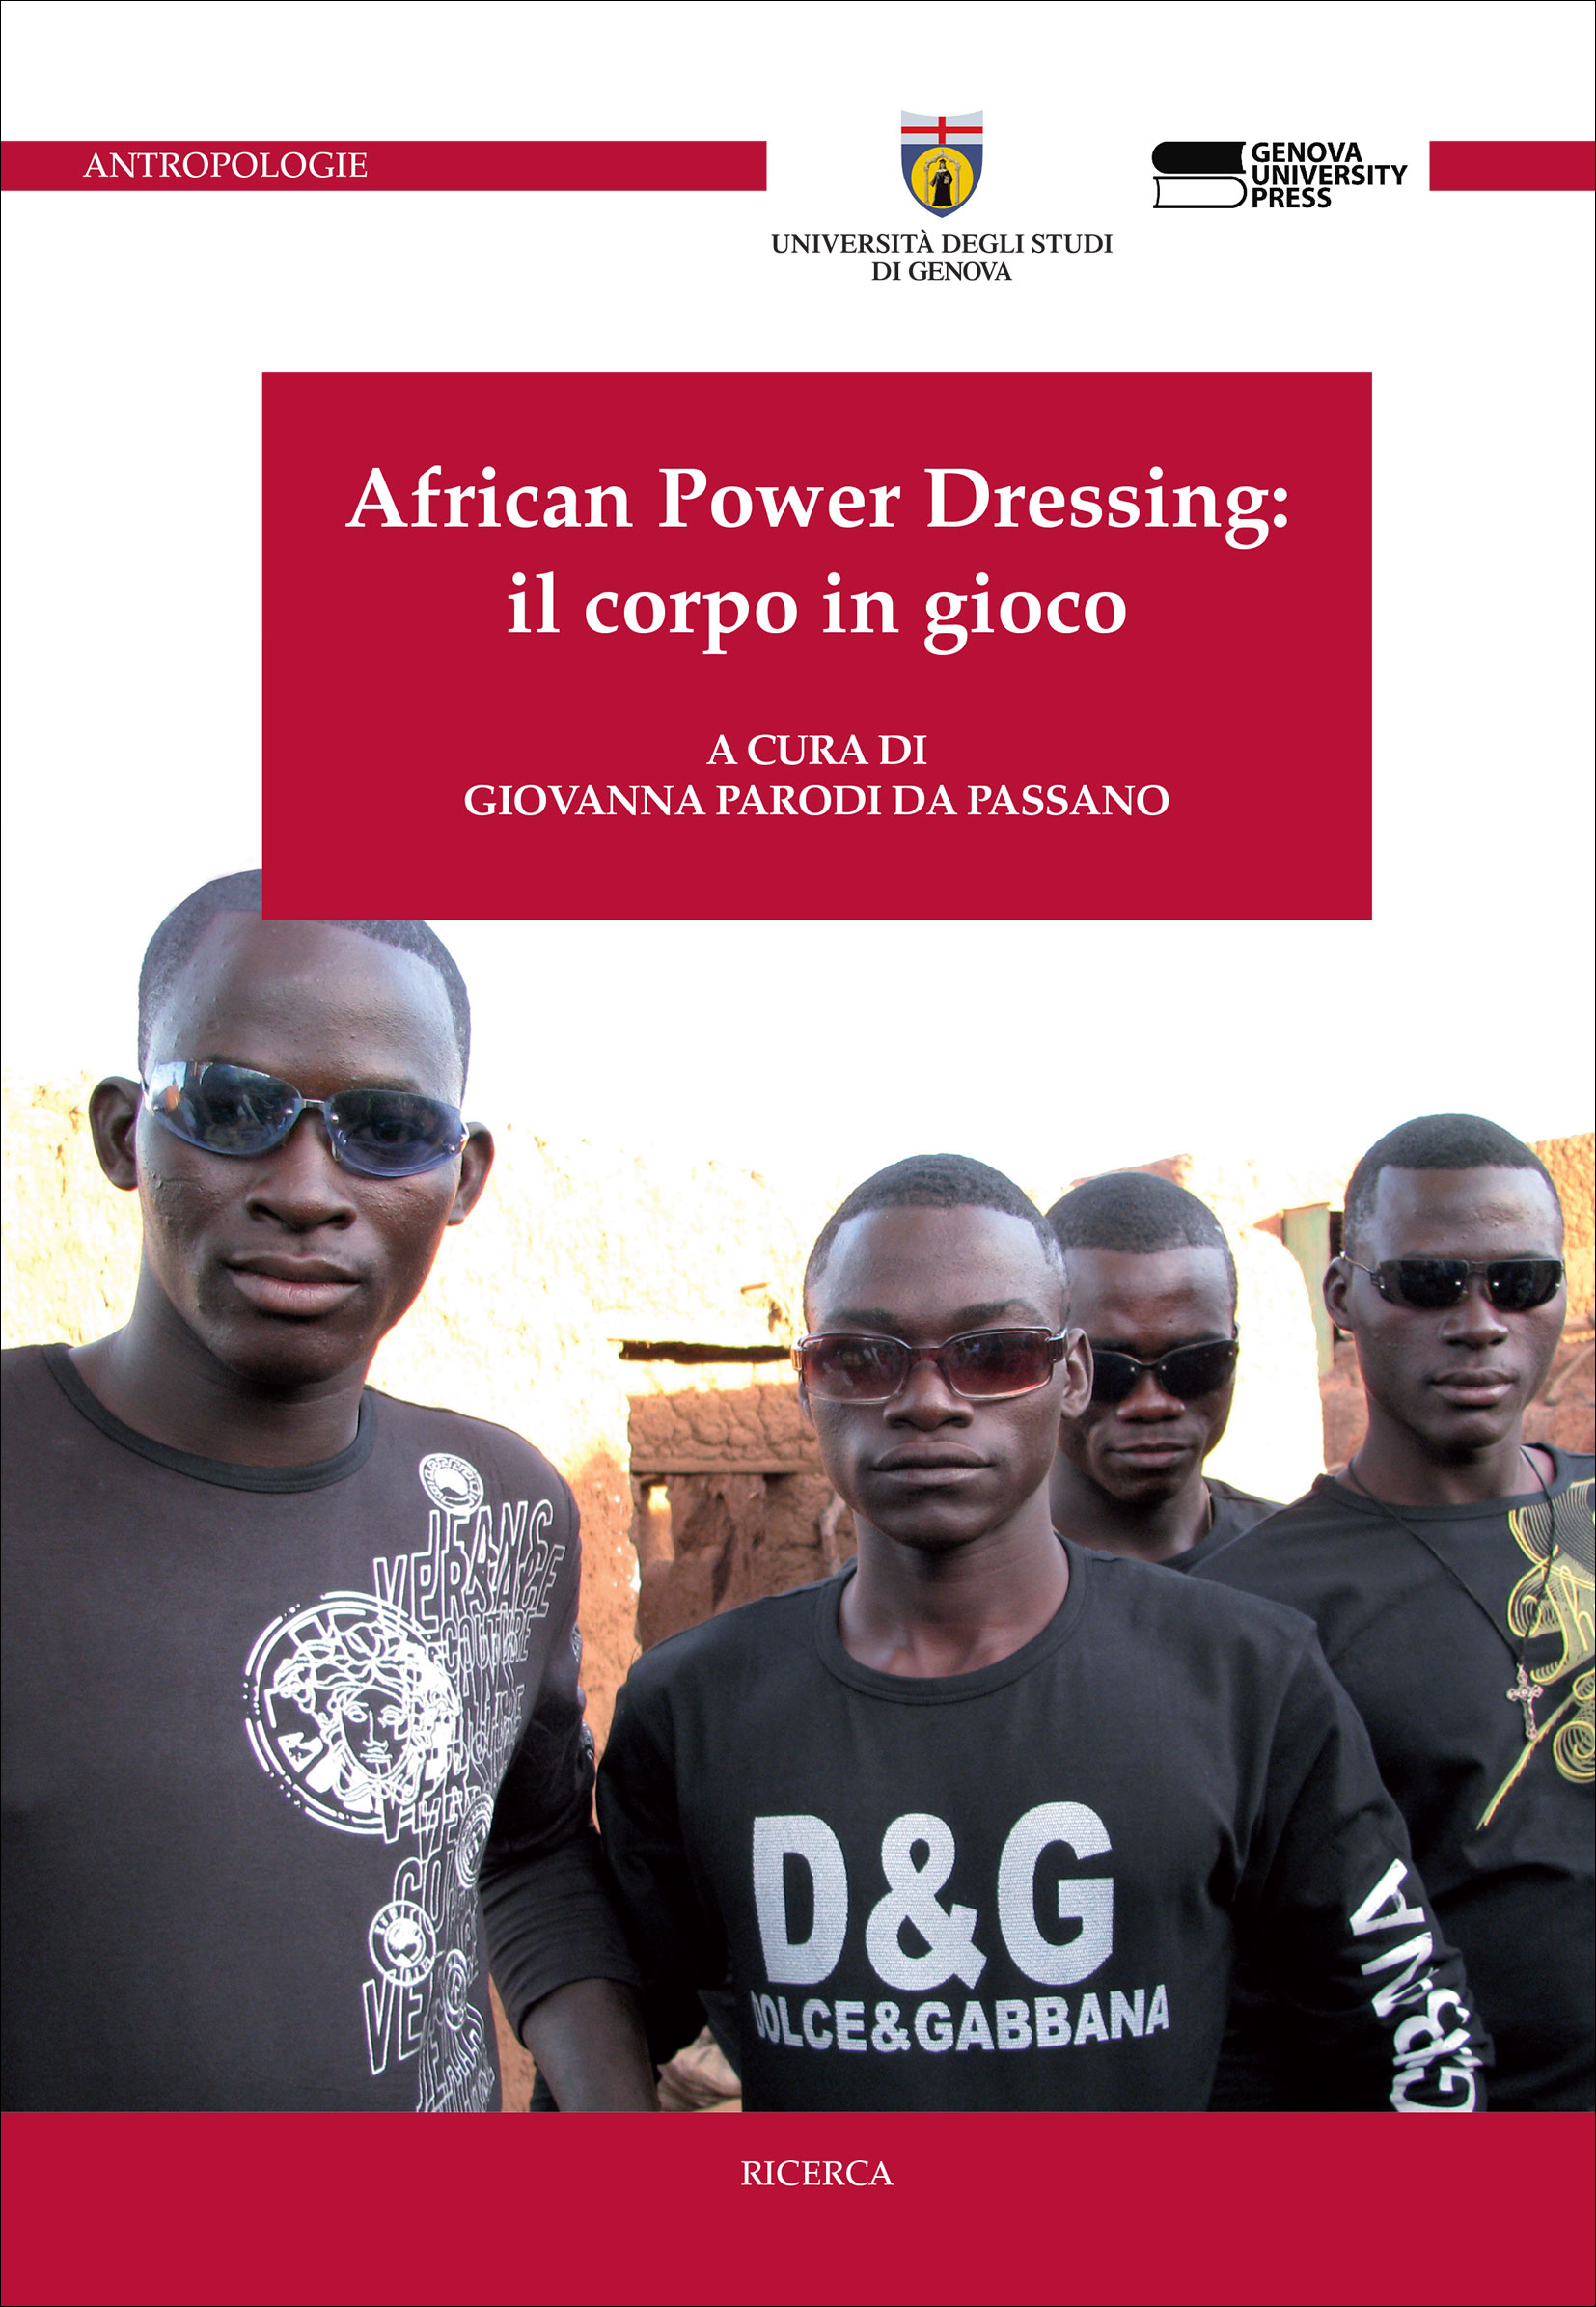 African Power Dressing: il corpo in gioco